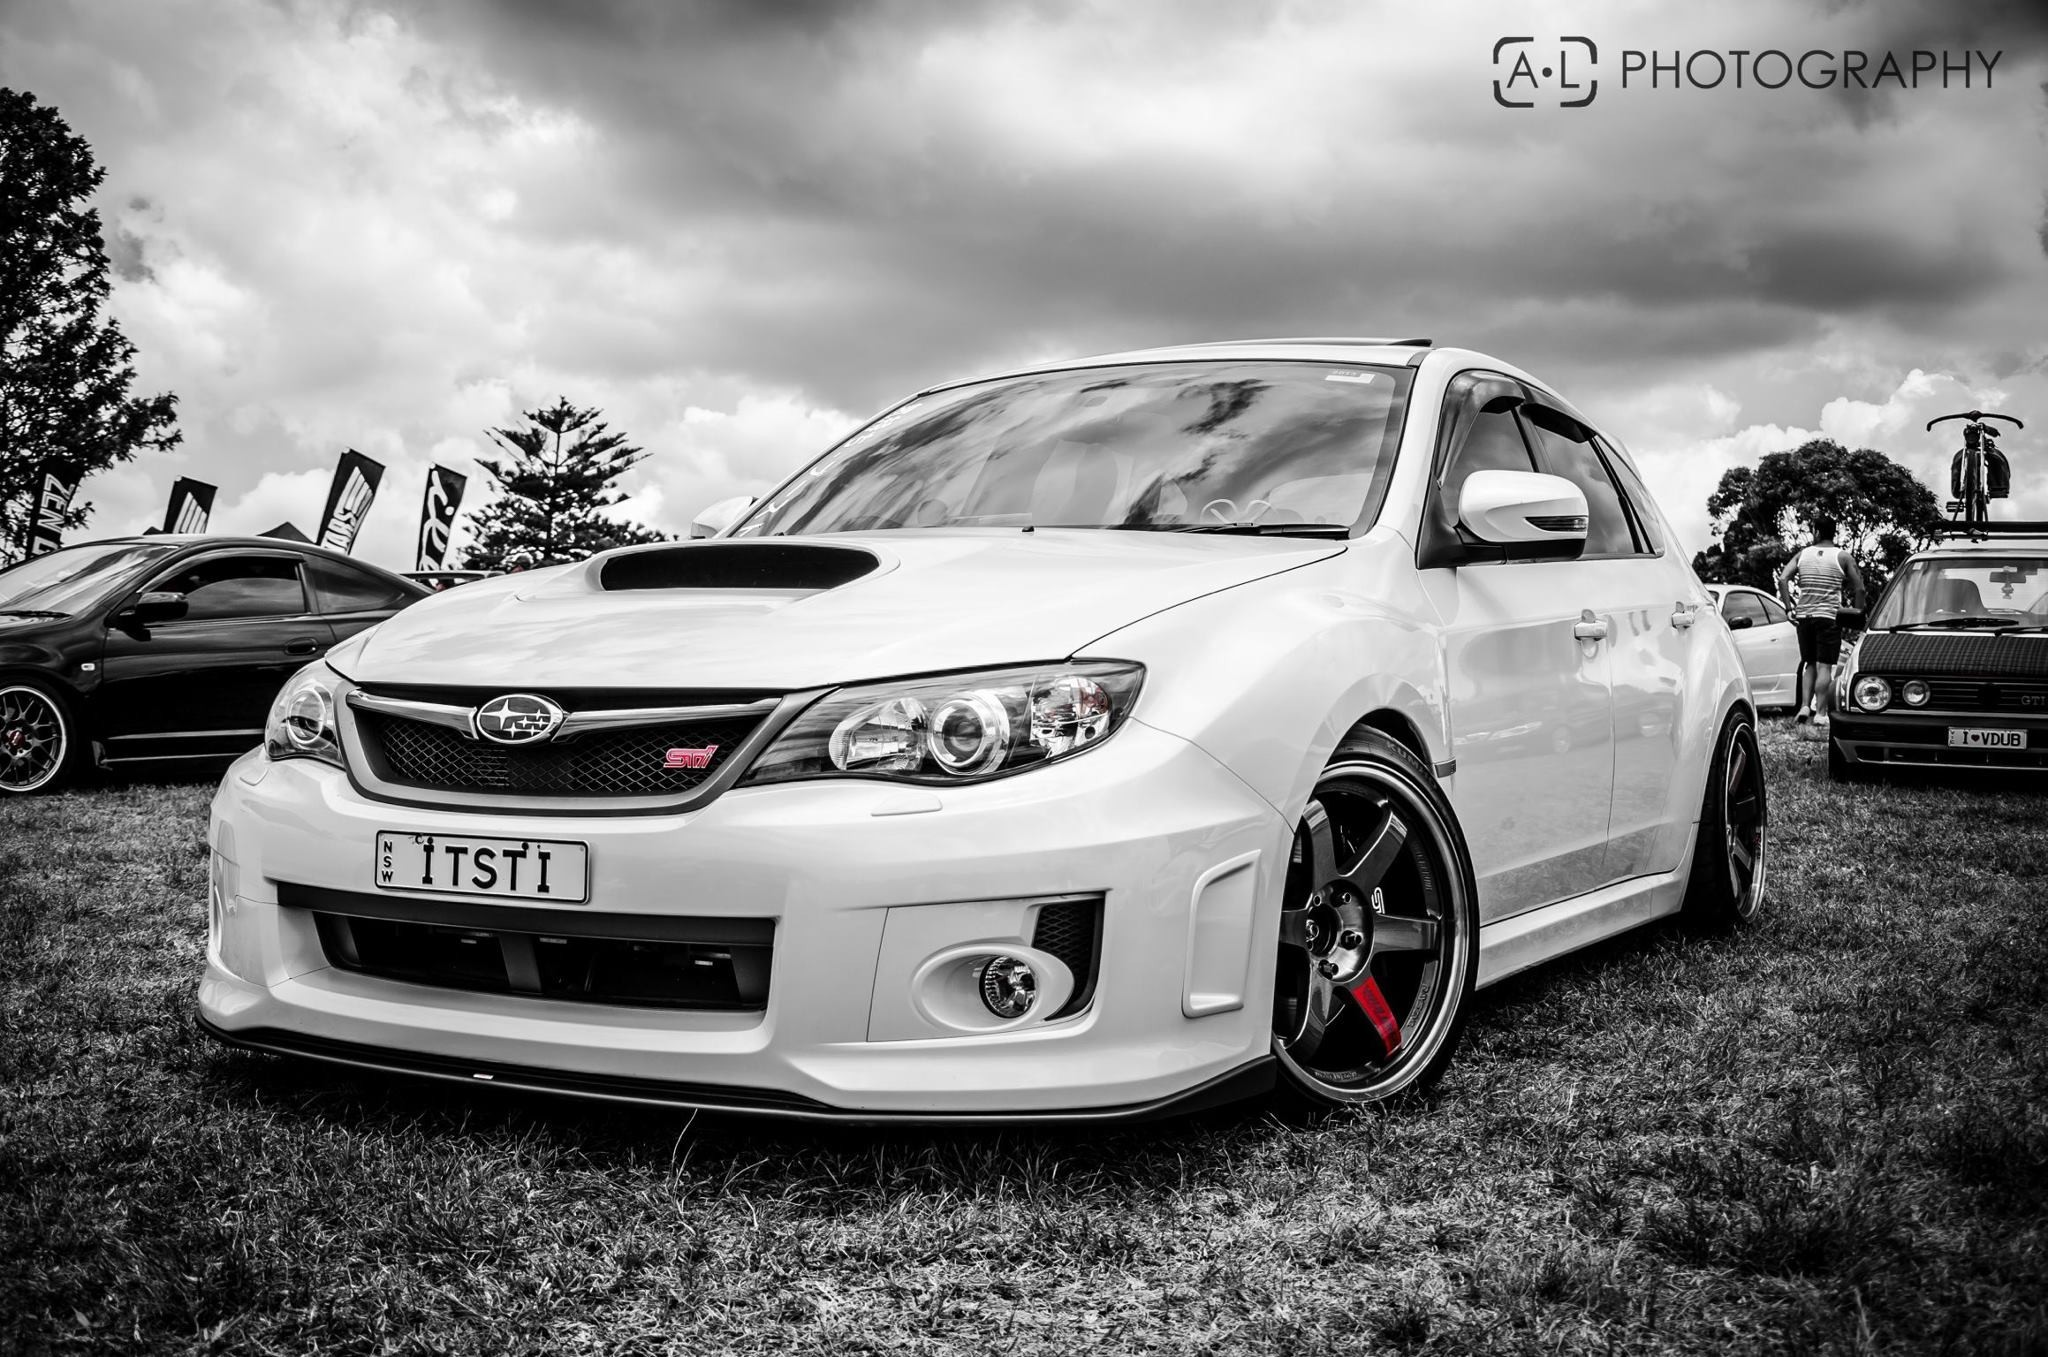 Cars Subaru Impreza Wrx Sti Wallpaper Allwallpaper In 12764 Pc En